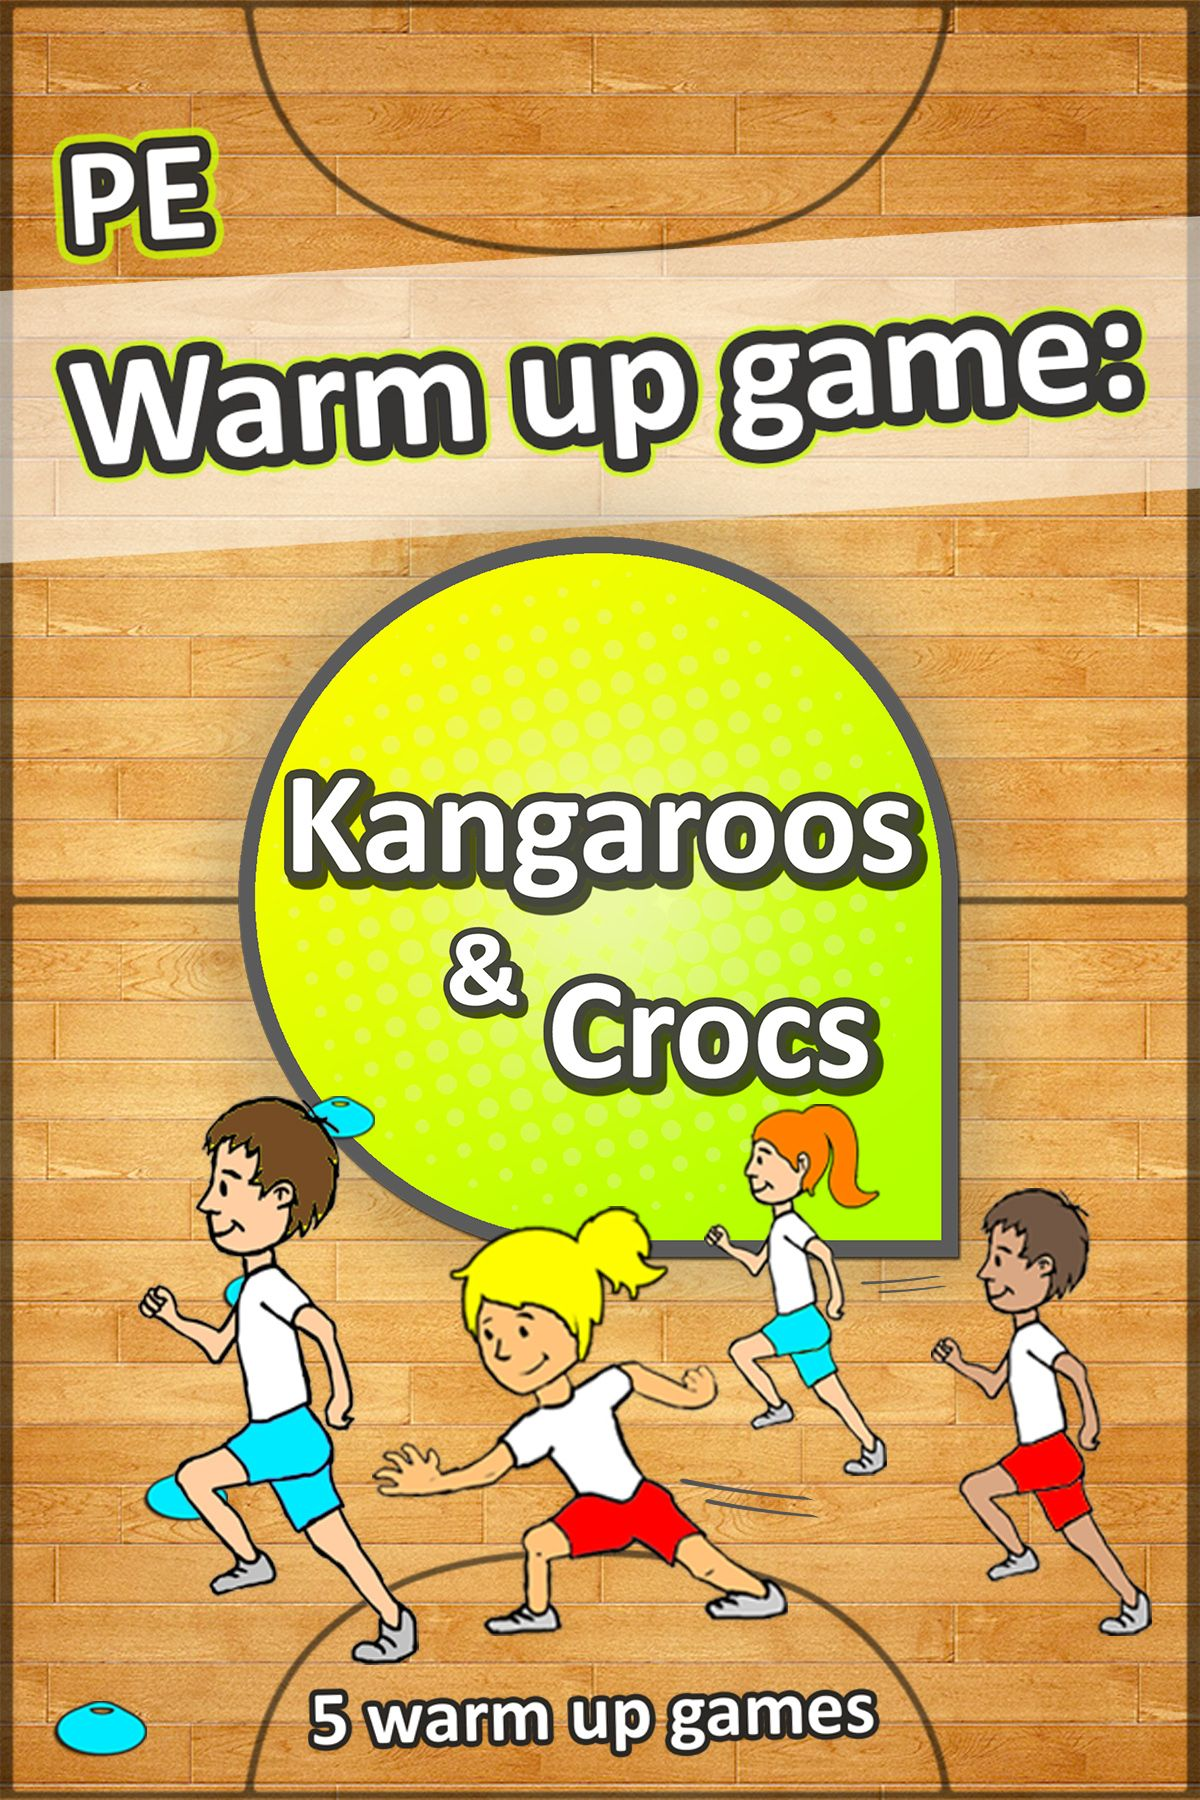 This Quick Reacting Sprinting Warm Up Game Is Great For Any Pe Lesson